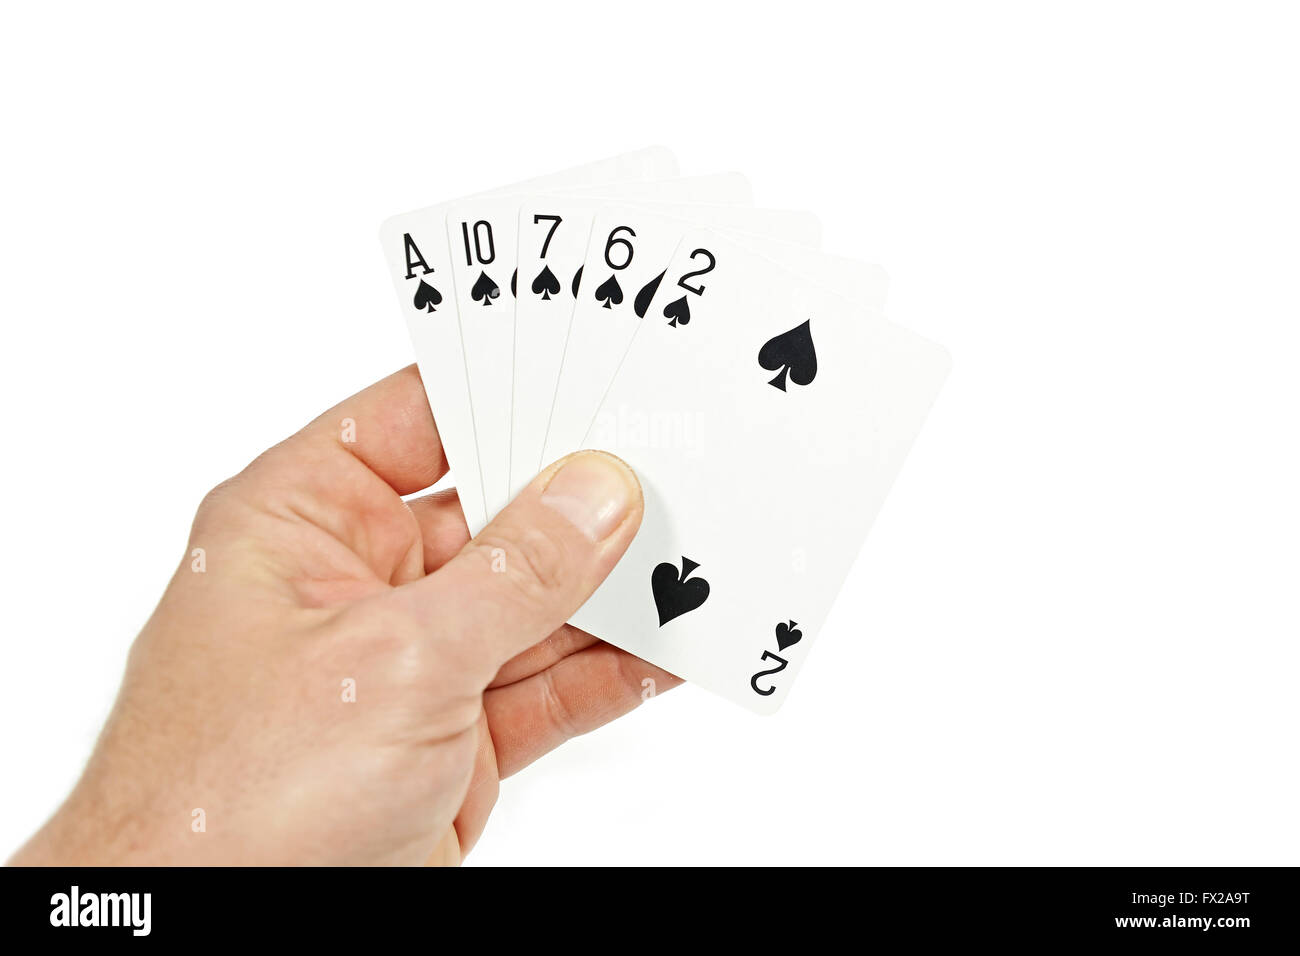 The hand of a Poker player holding flush - Stock Image